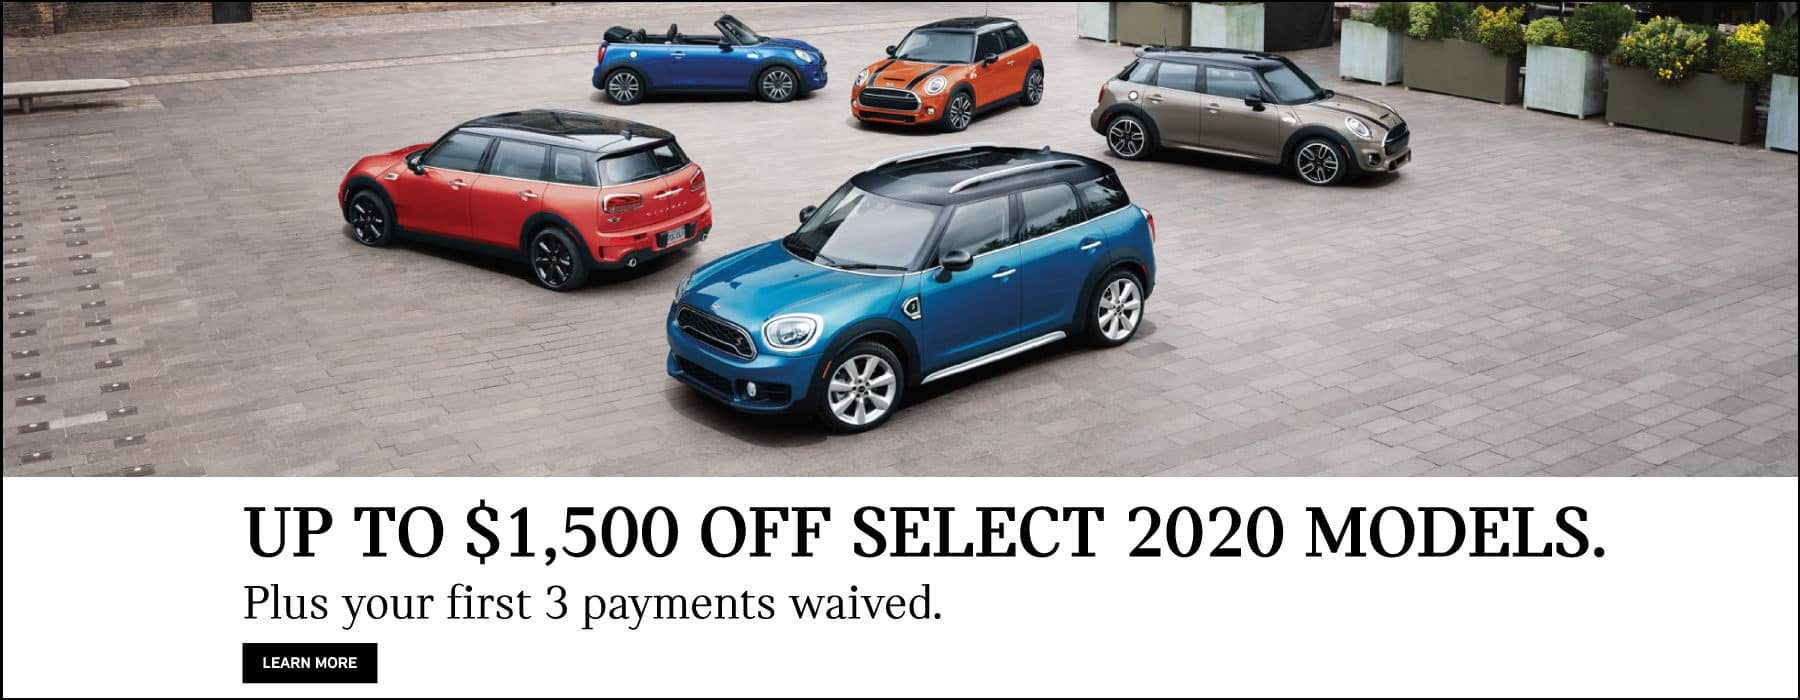 Up to $1,500 off select 2020 models. plus your first 3 payments waived. learn more button.